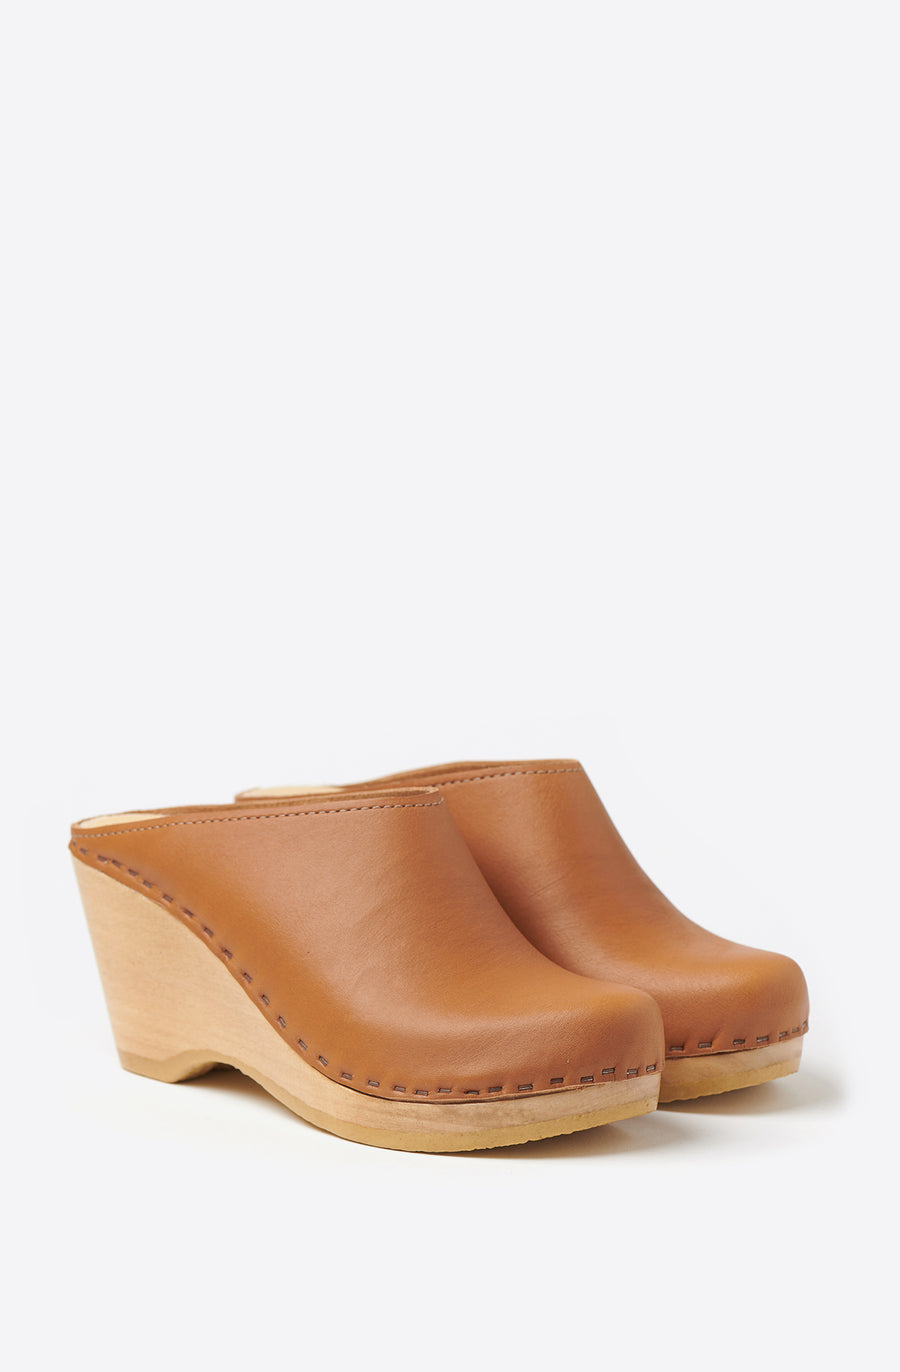 New School Wedge Clog-palomino